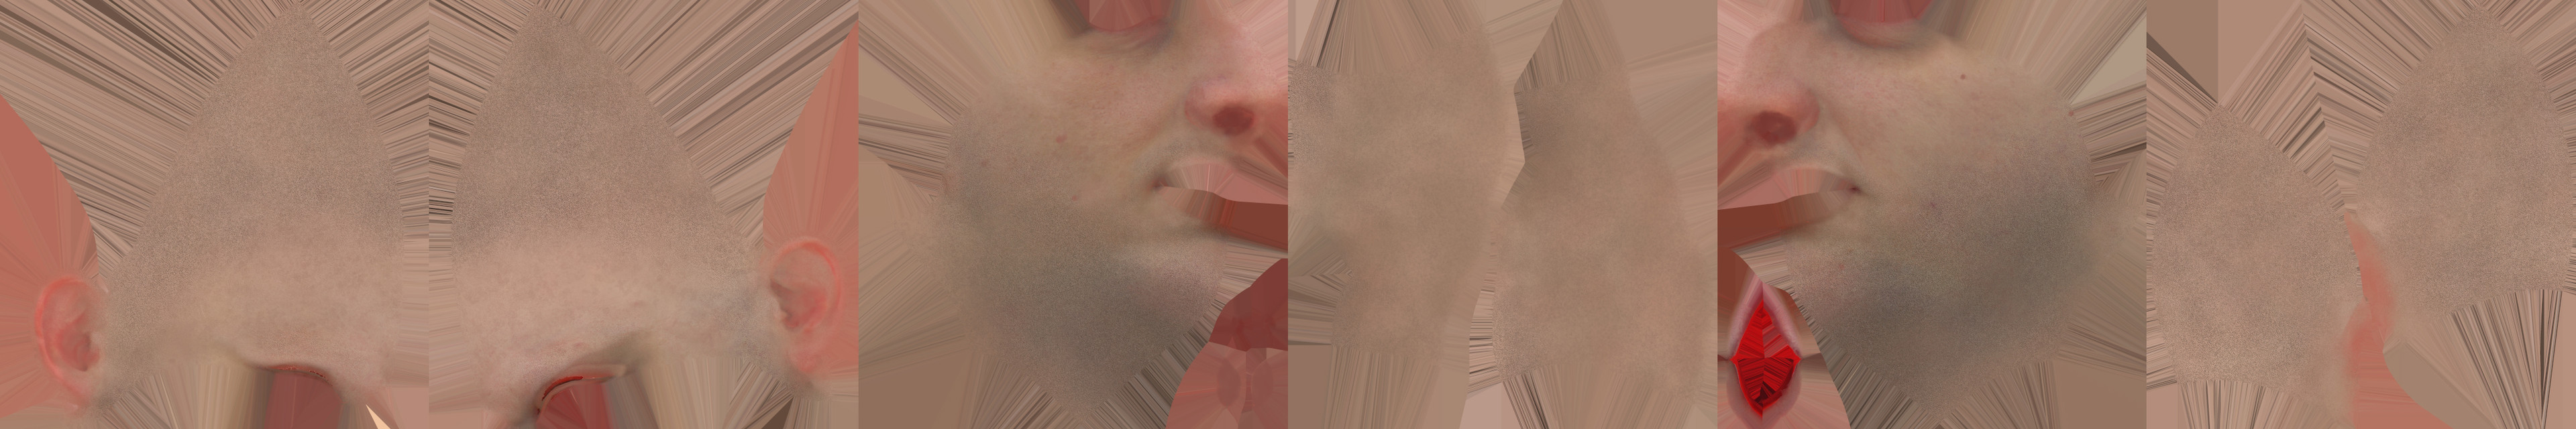 Reconstructed Scan Textures dilation w/ Paintovers